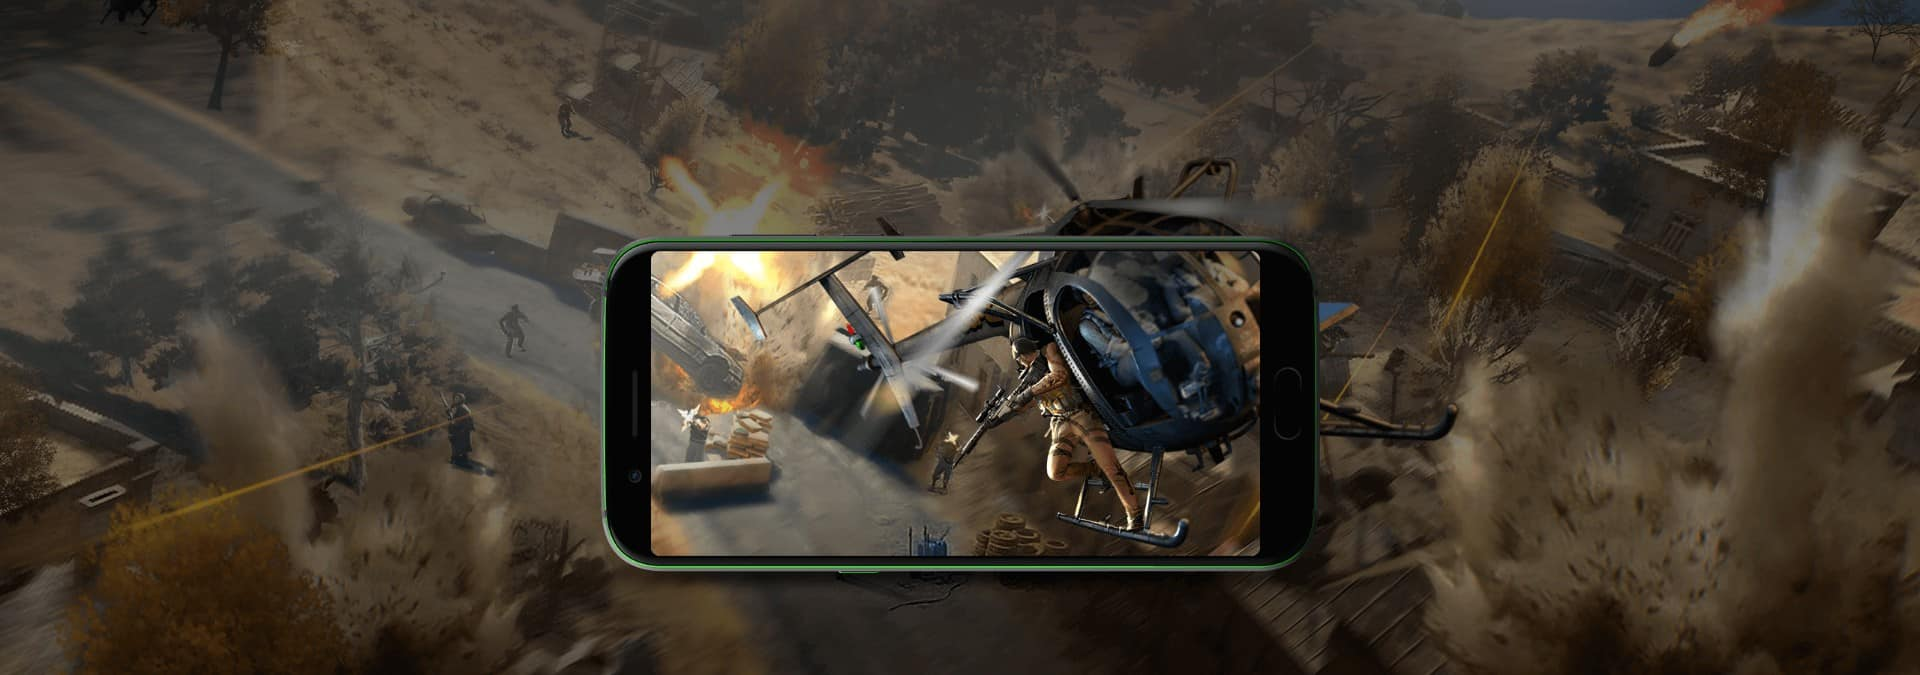 Black Shark Gaming smartphone official image 3